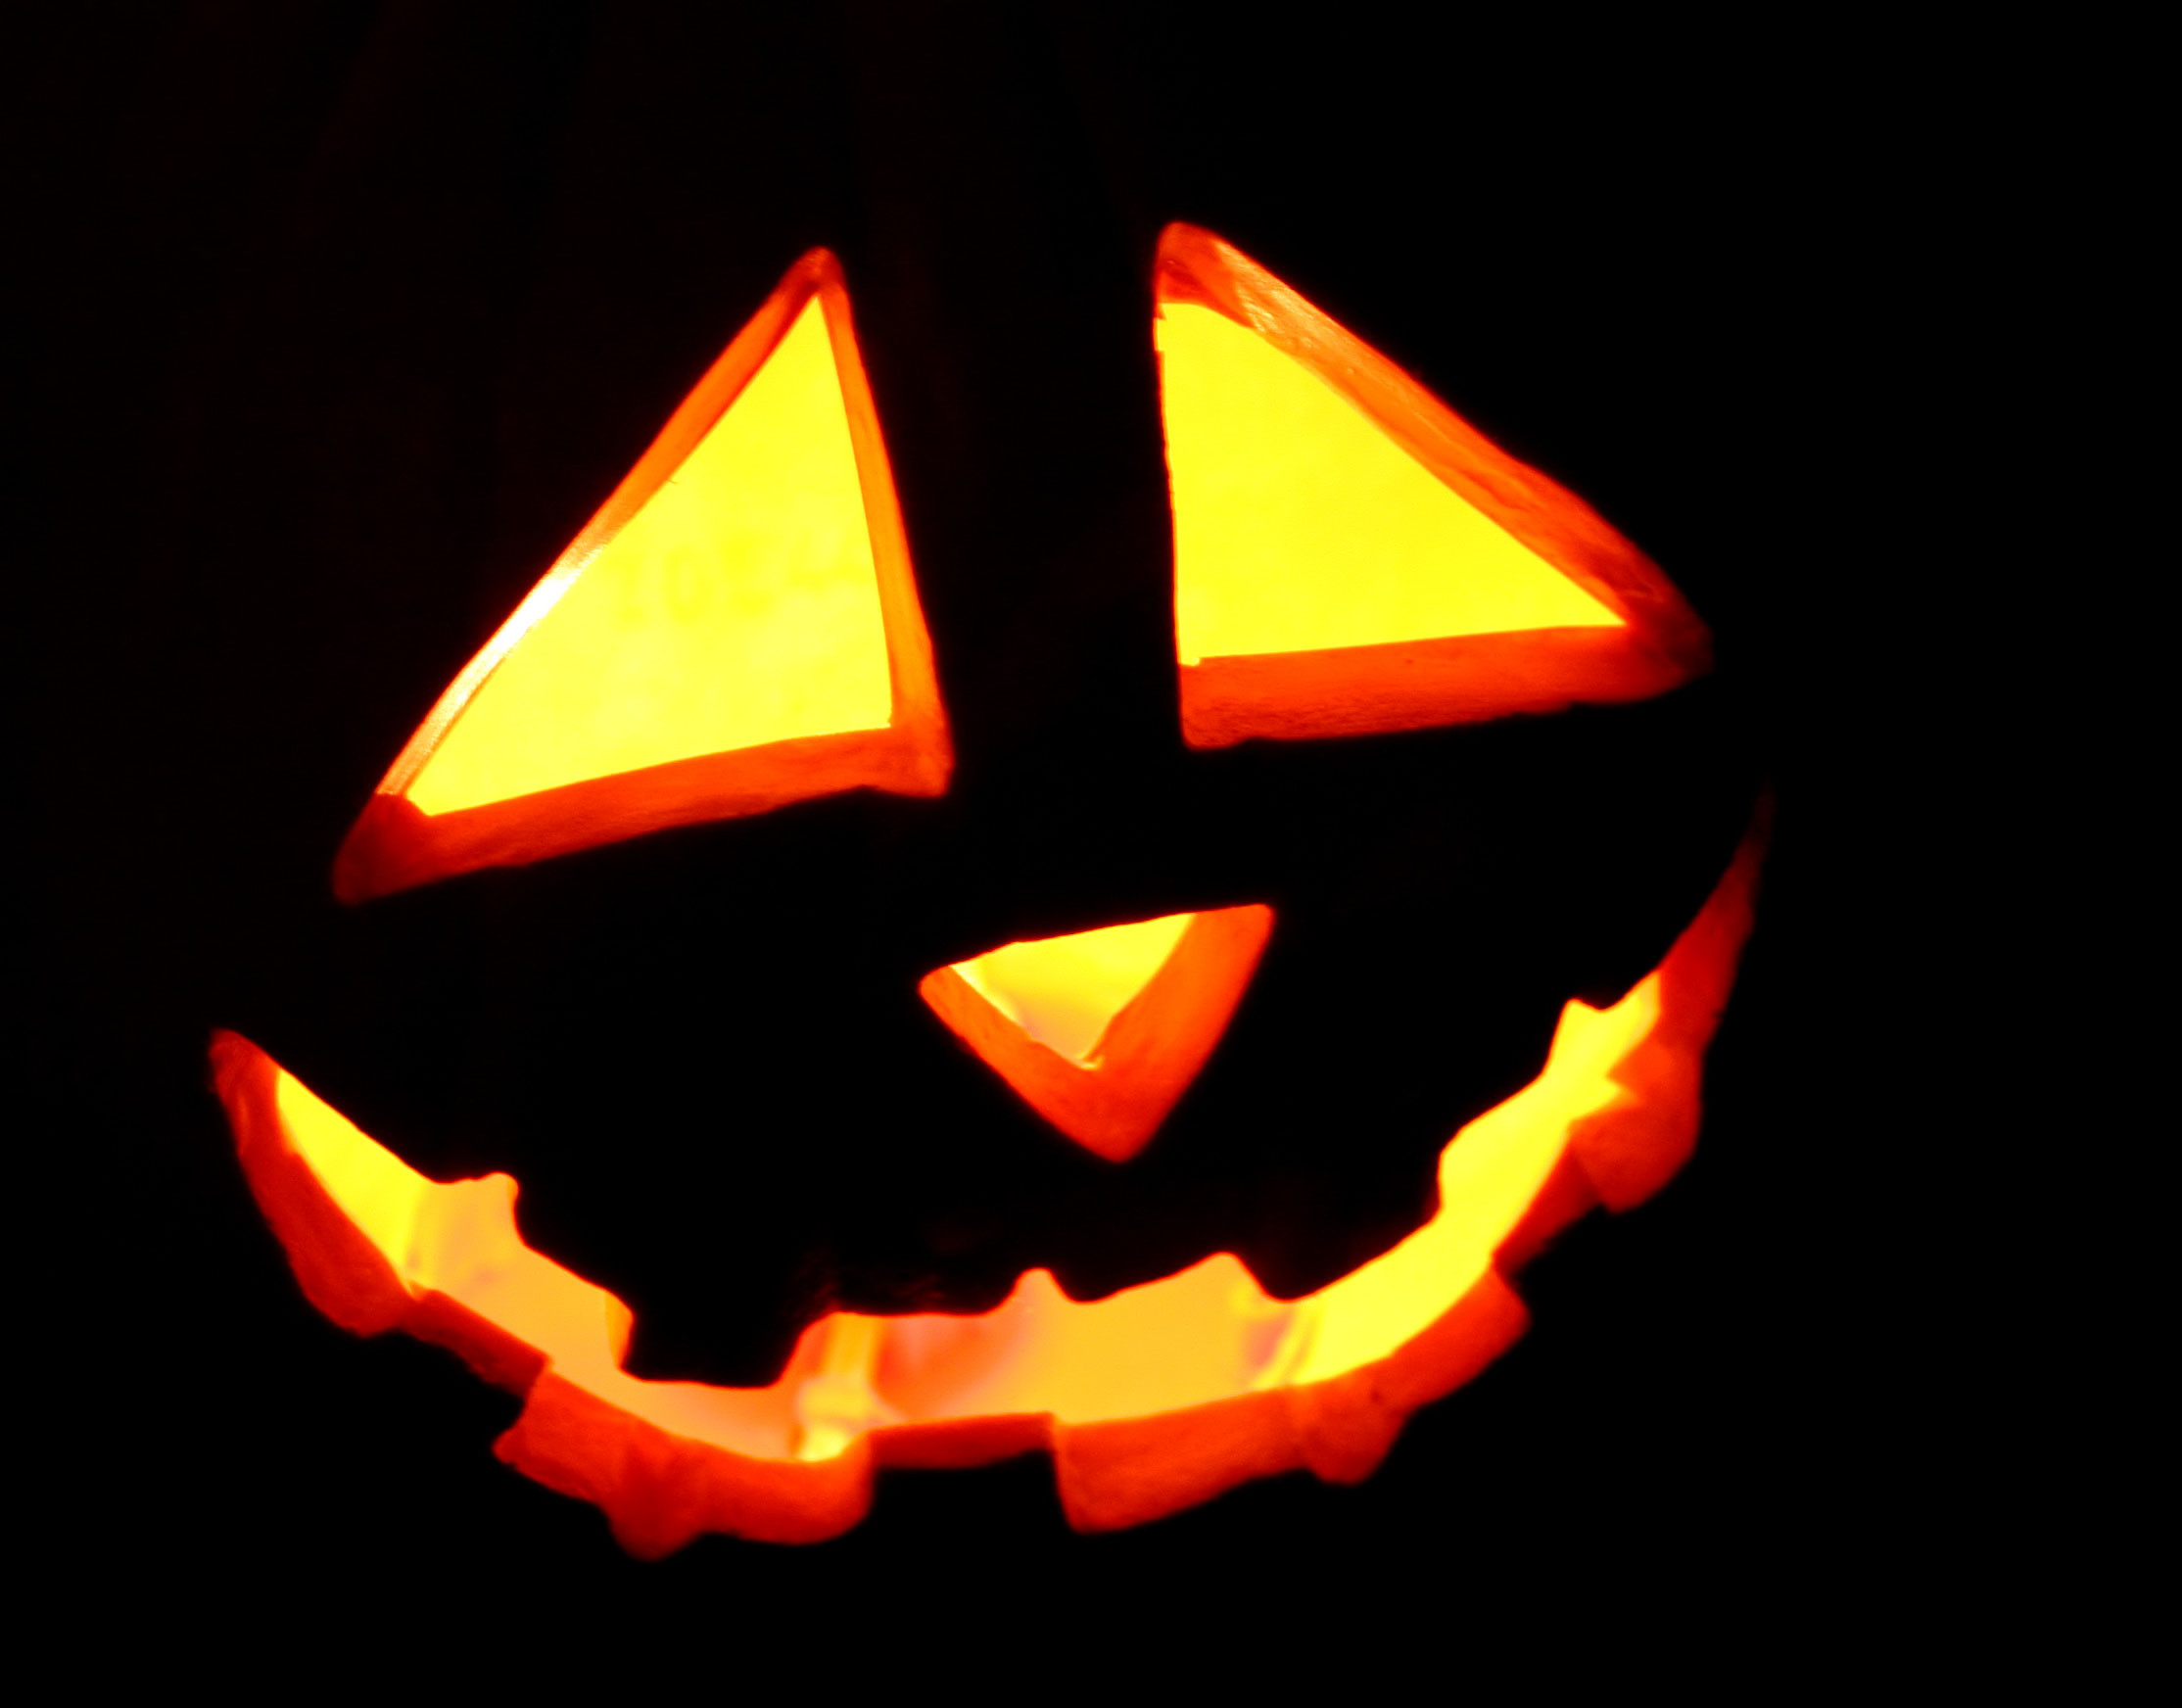 Jack-O-Latern, Candle, Carving, Glowing, Halloween, HQ Photo